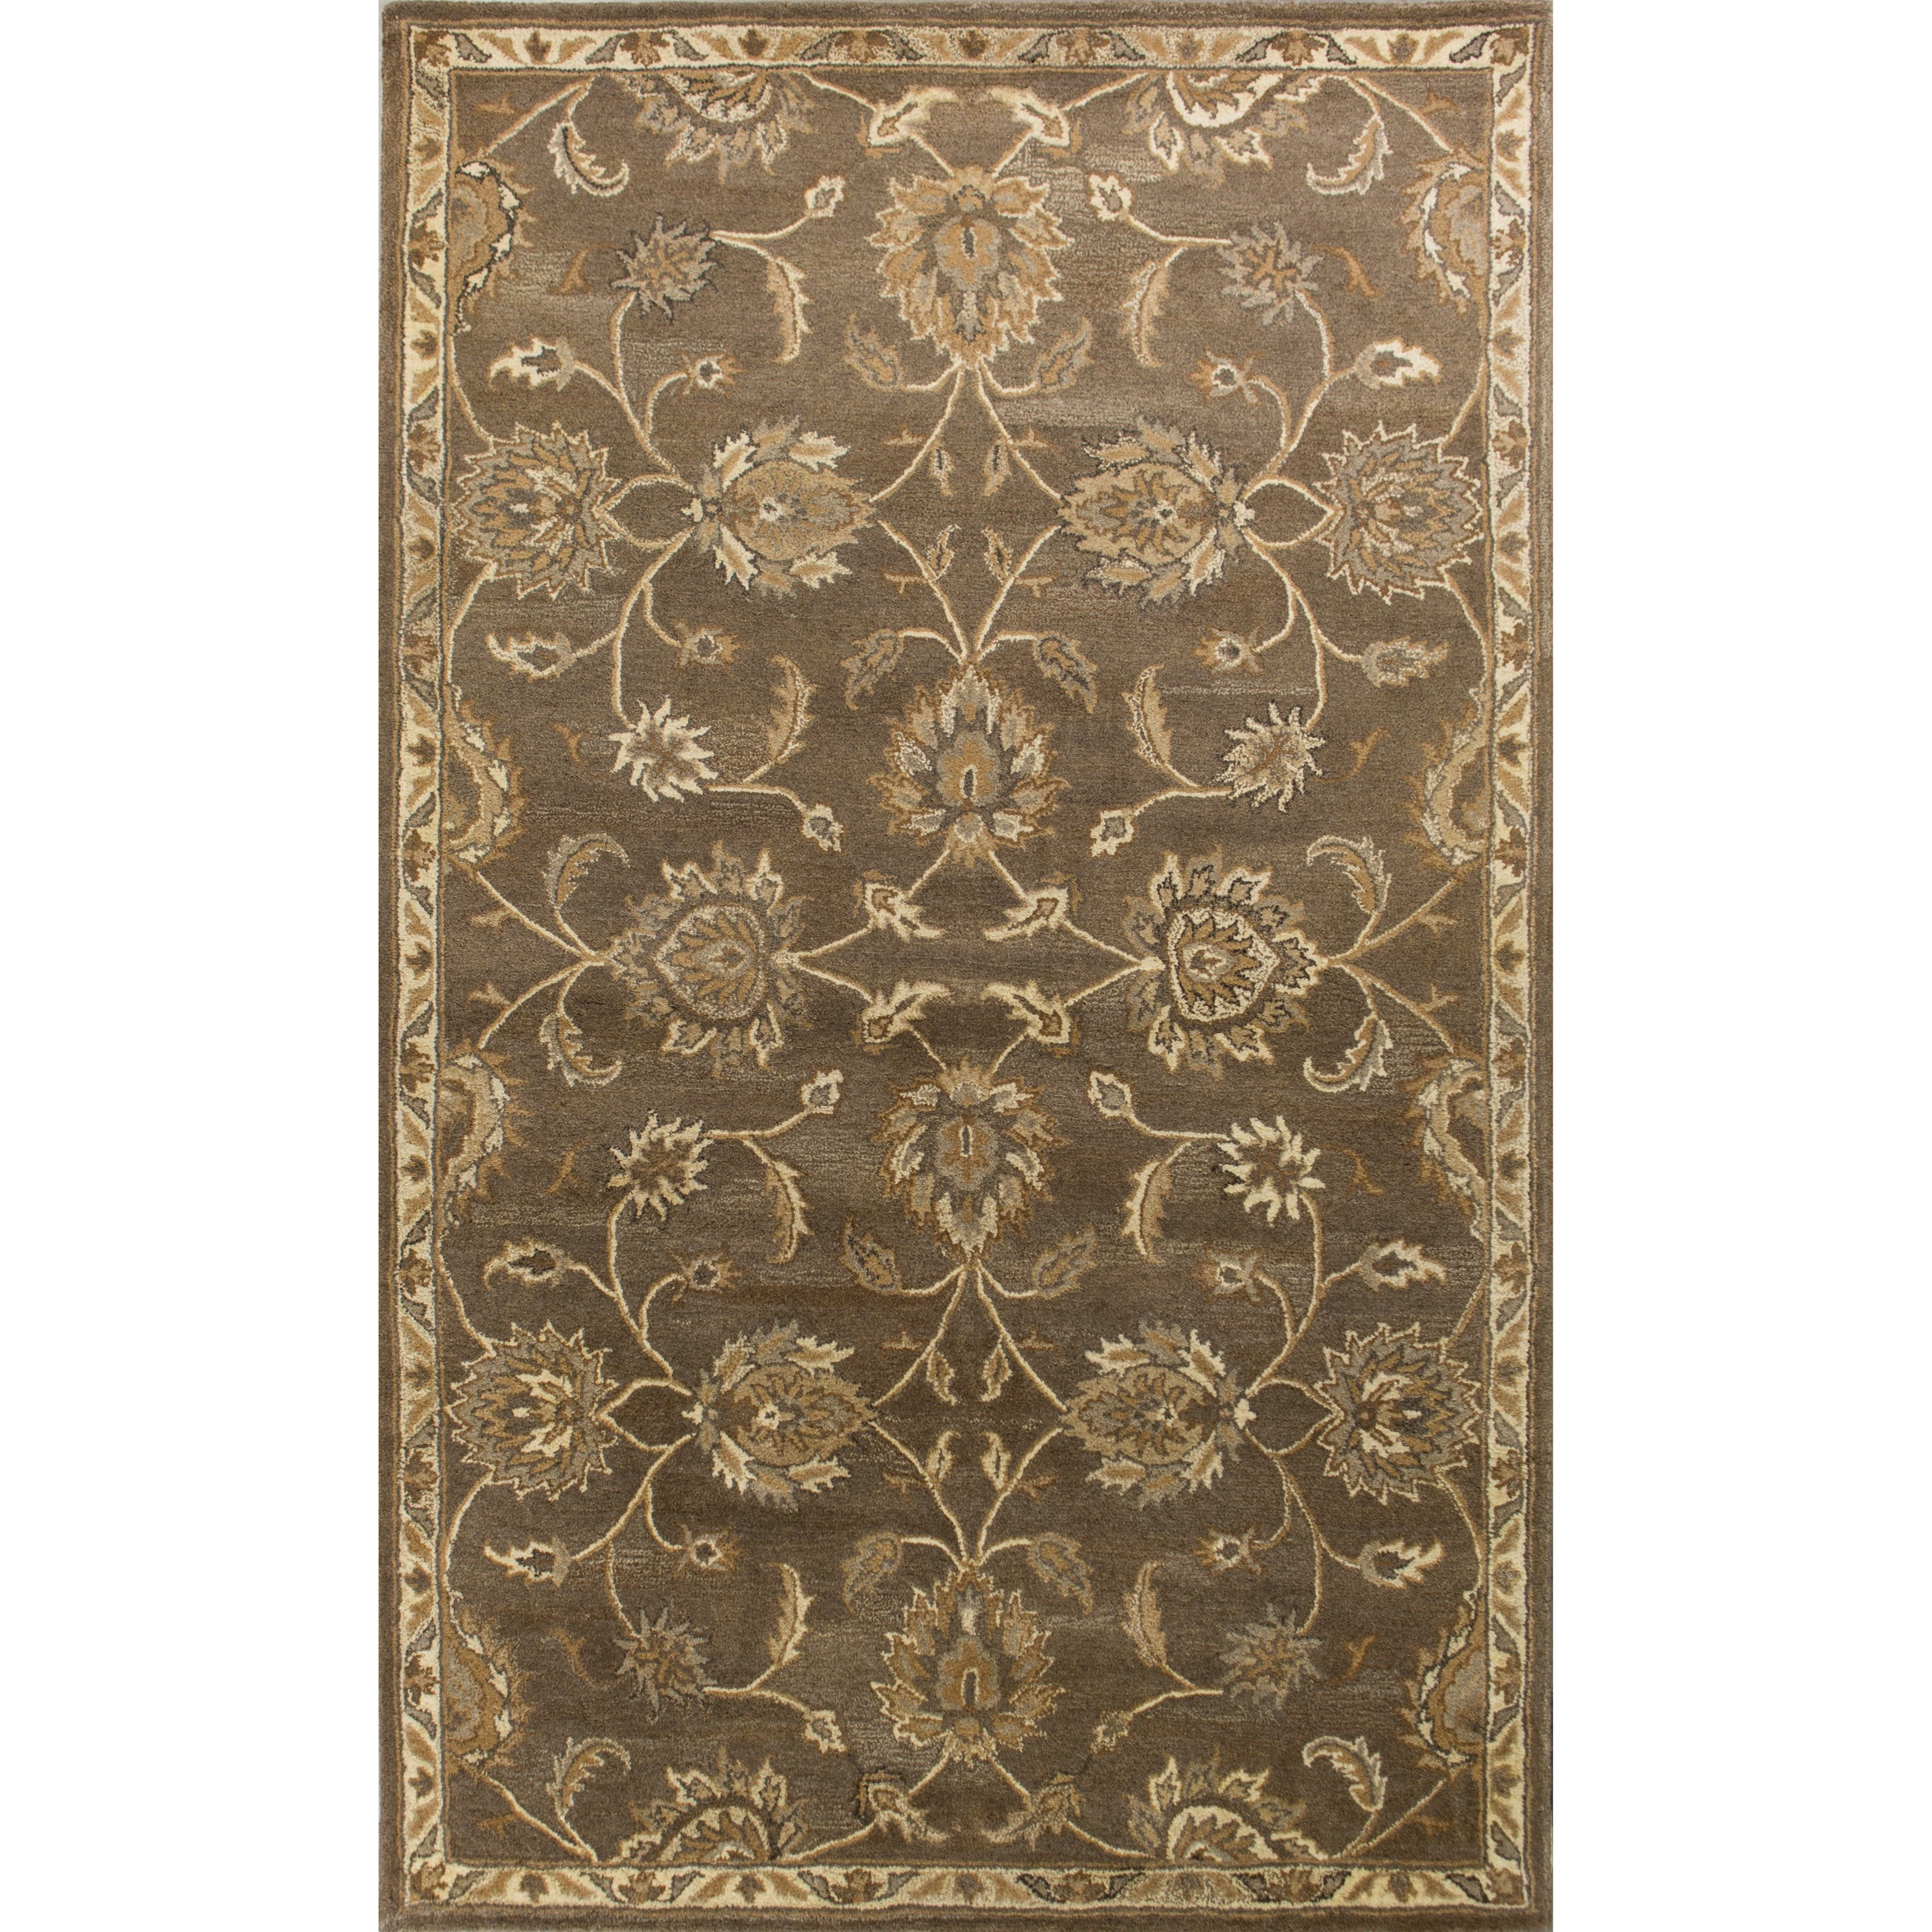 Syriana 8' X 5' Area Rug by Kas at Zak's Home